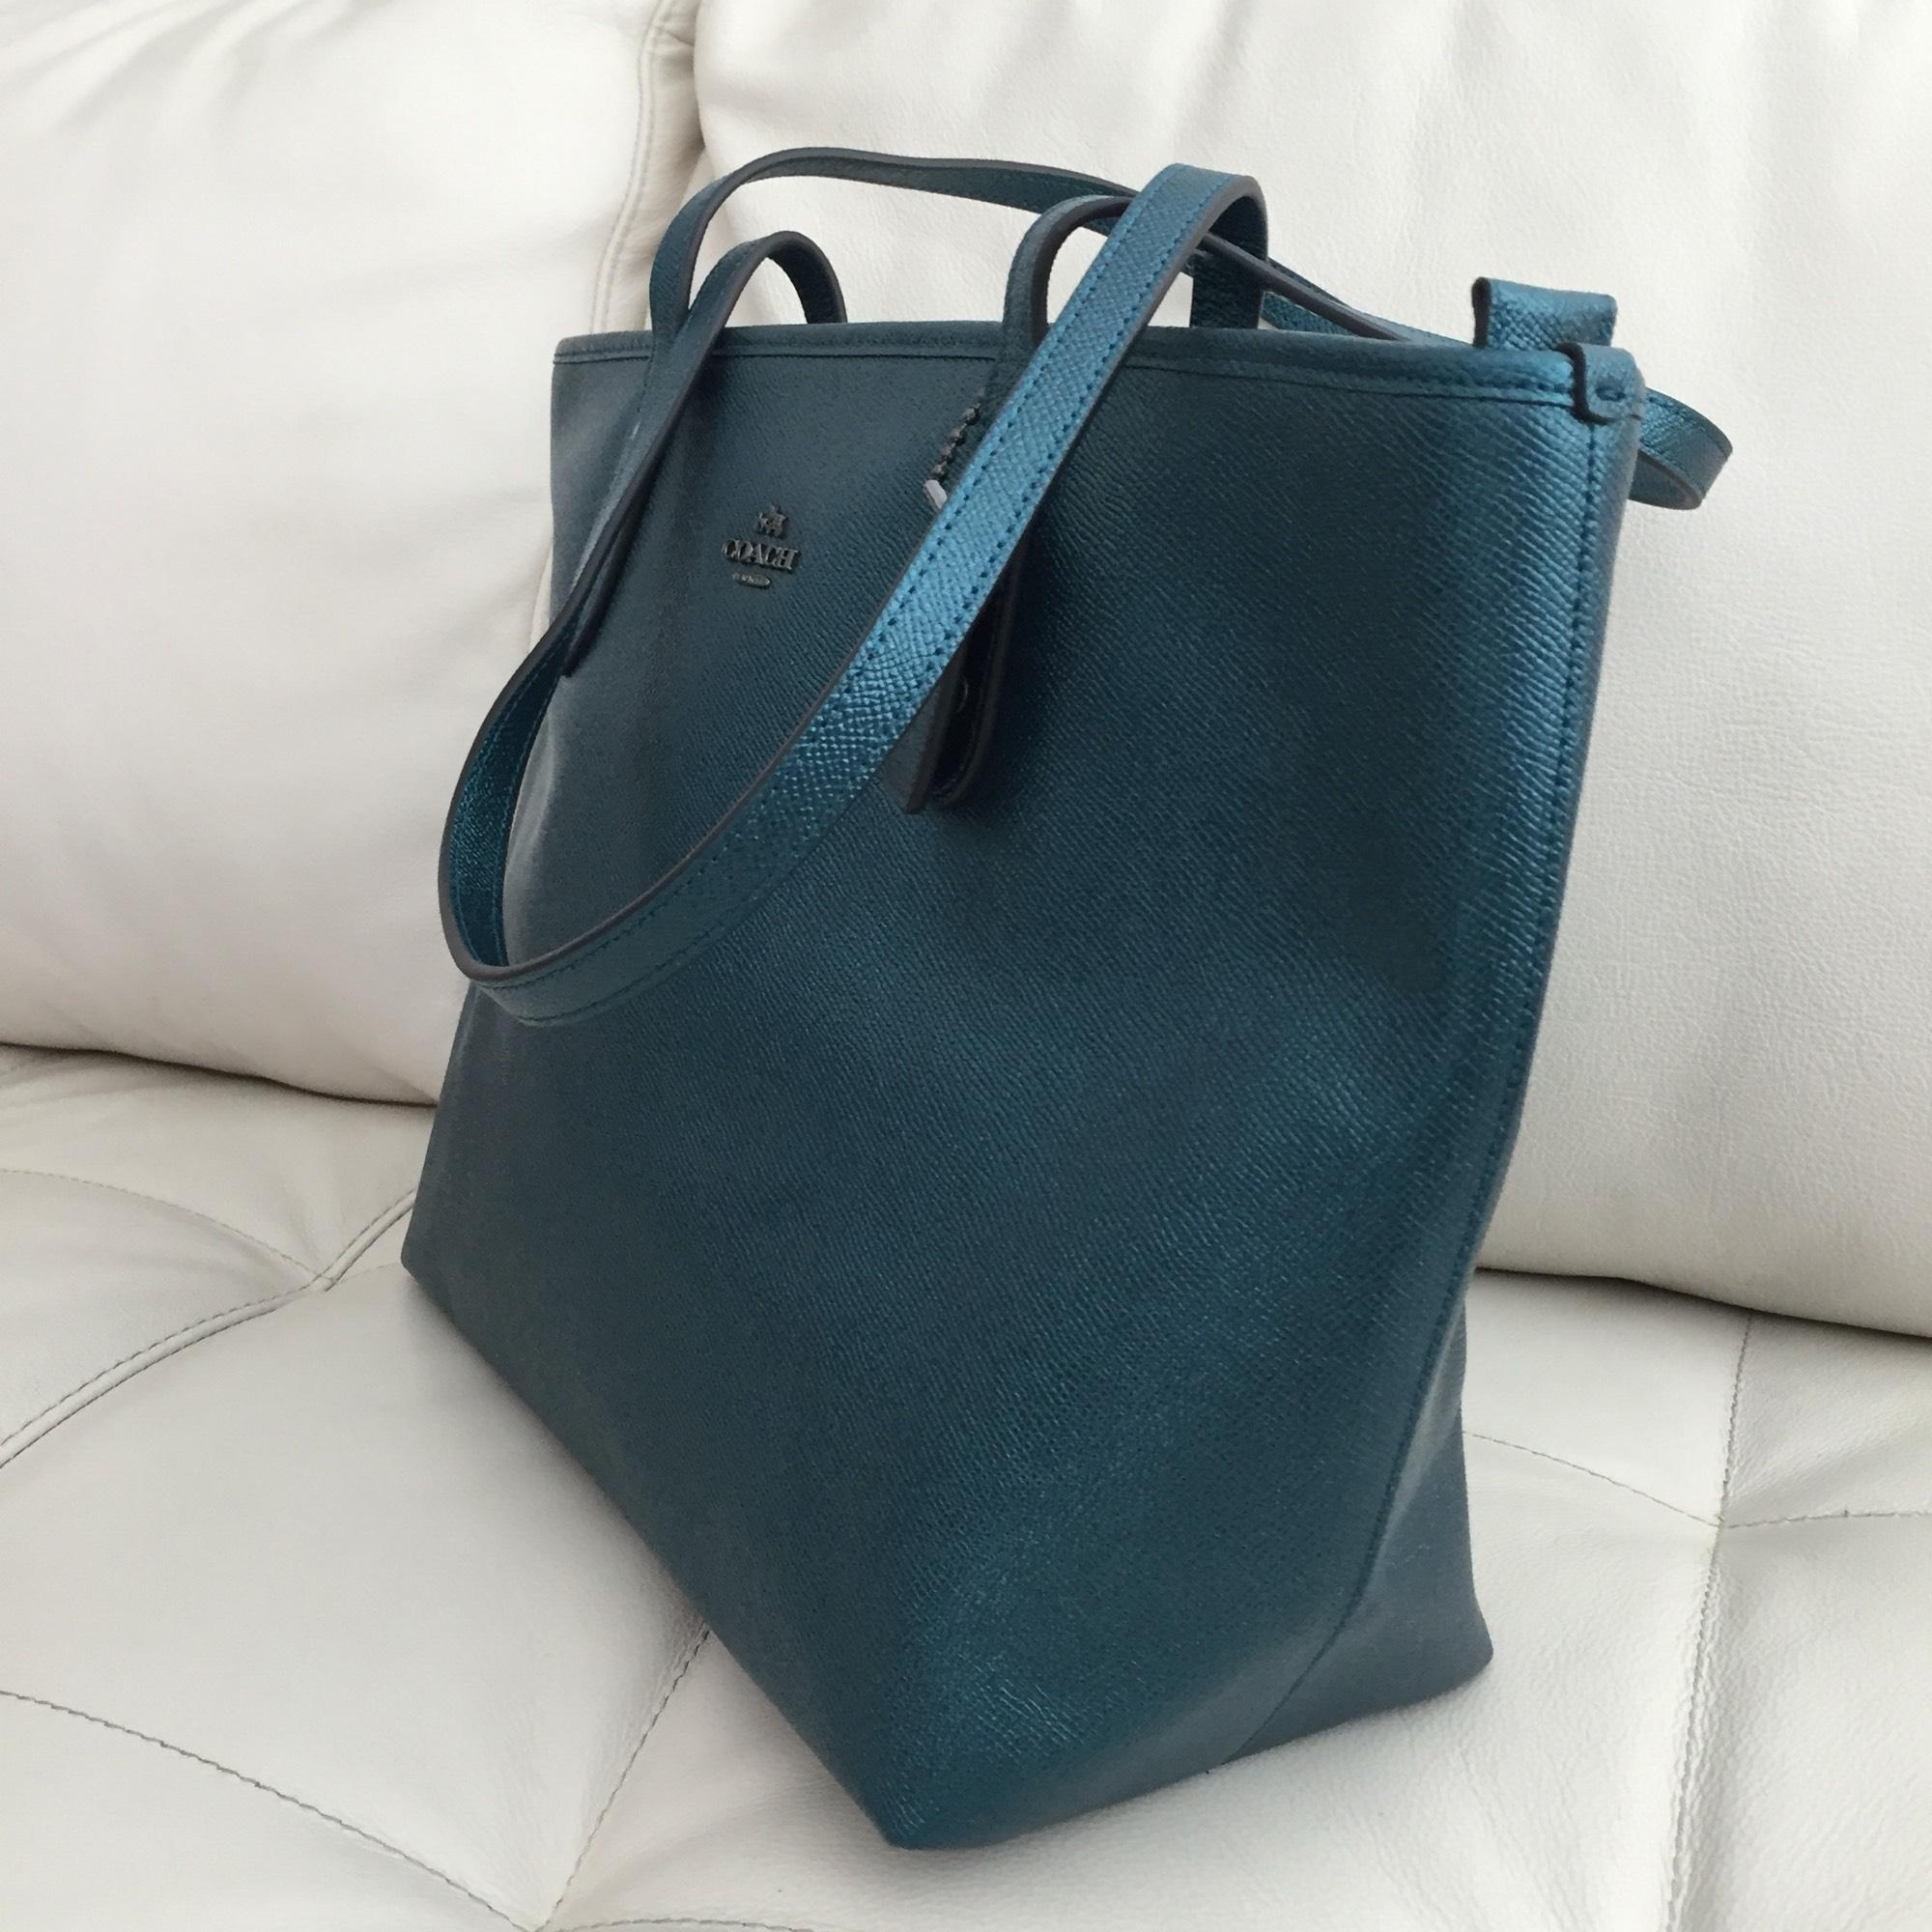 1ff7cfc7fe ... norway coach tote in dark teal. 12345678910 771dc 88841